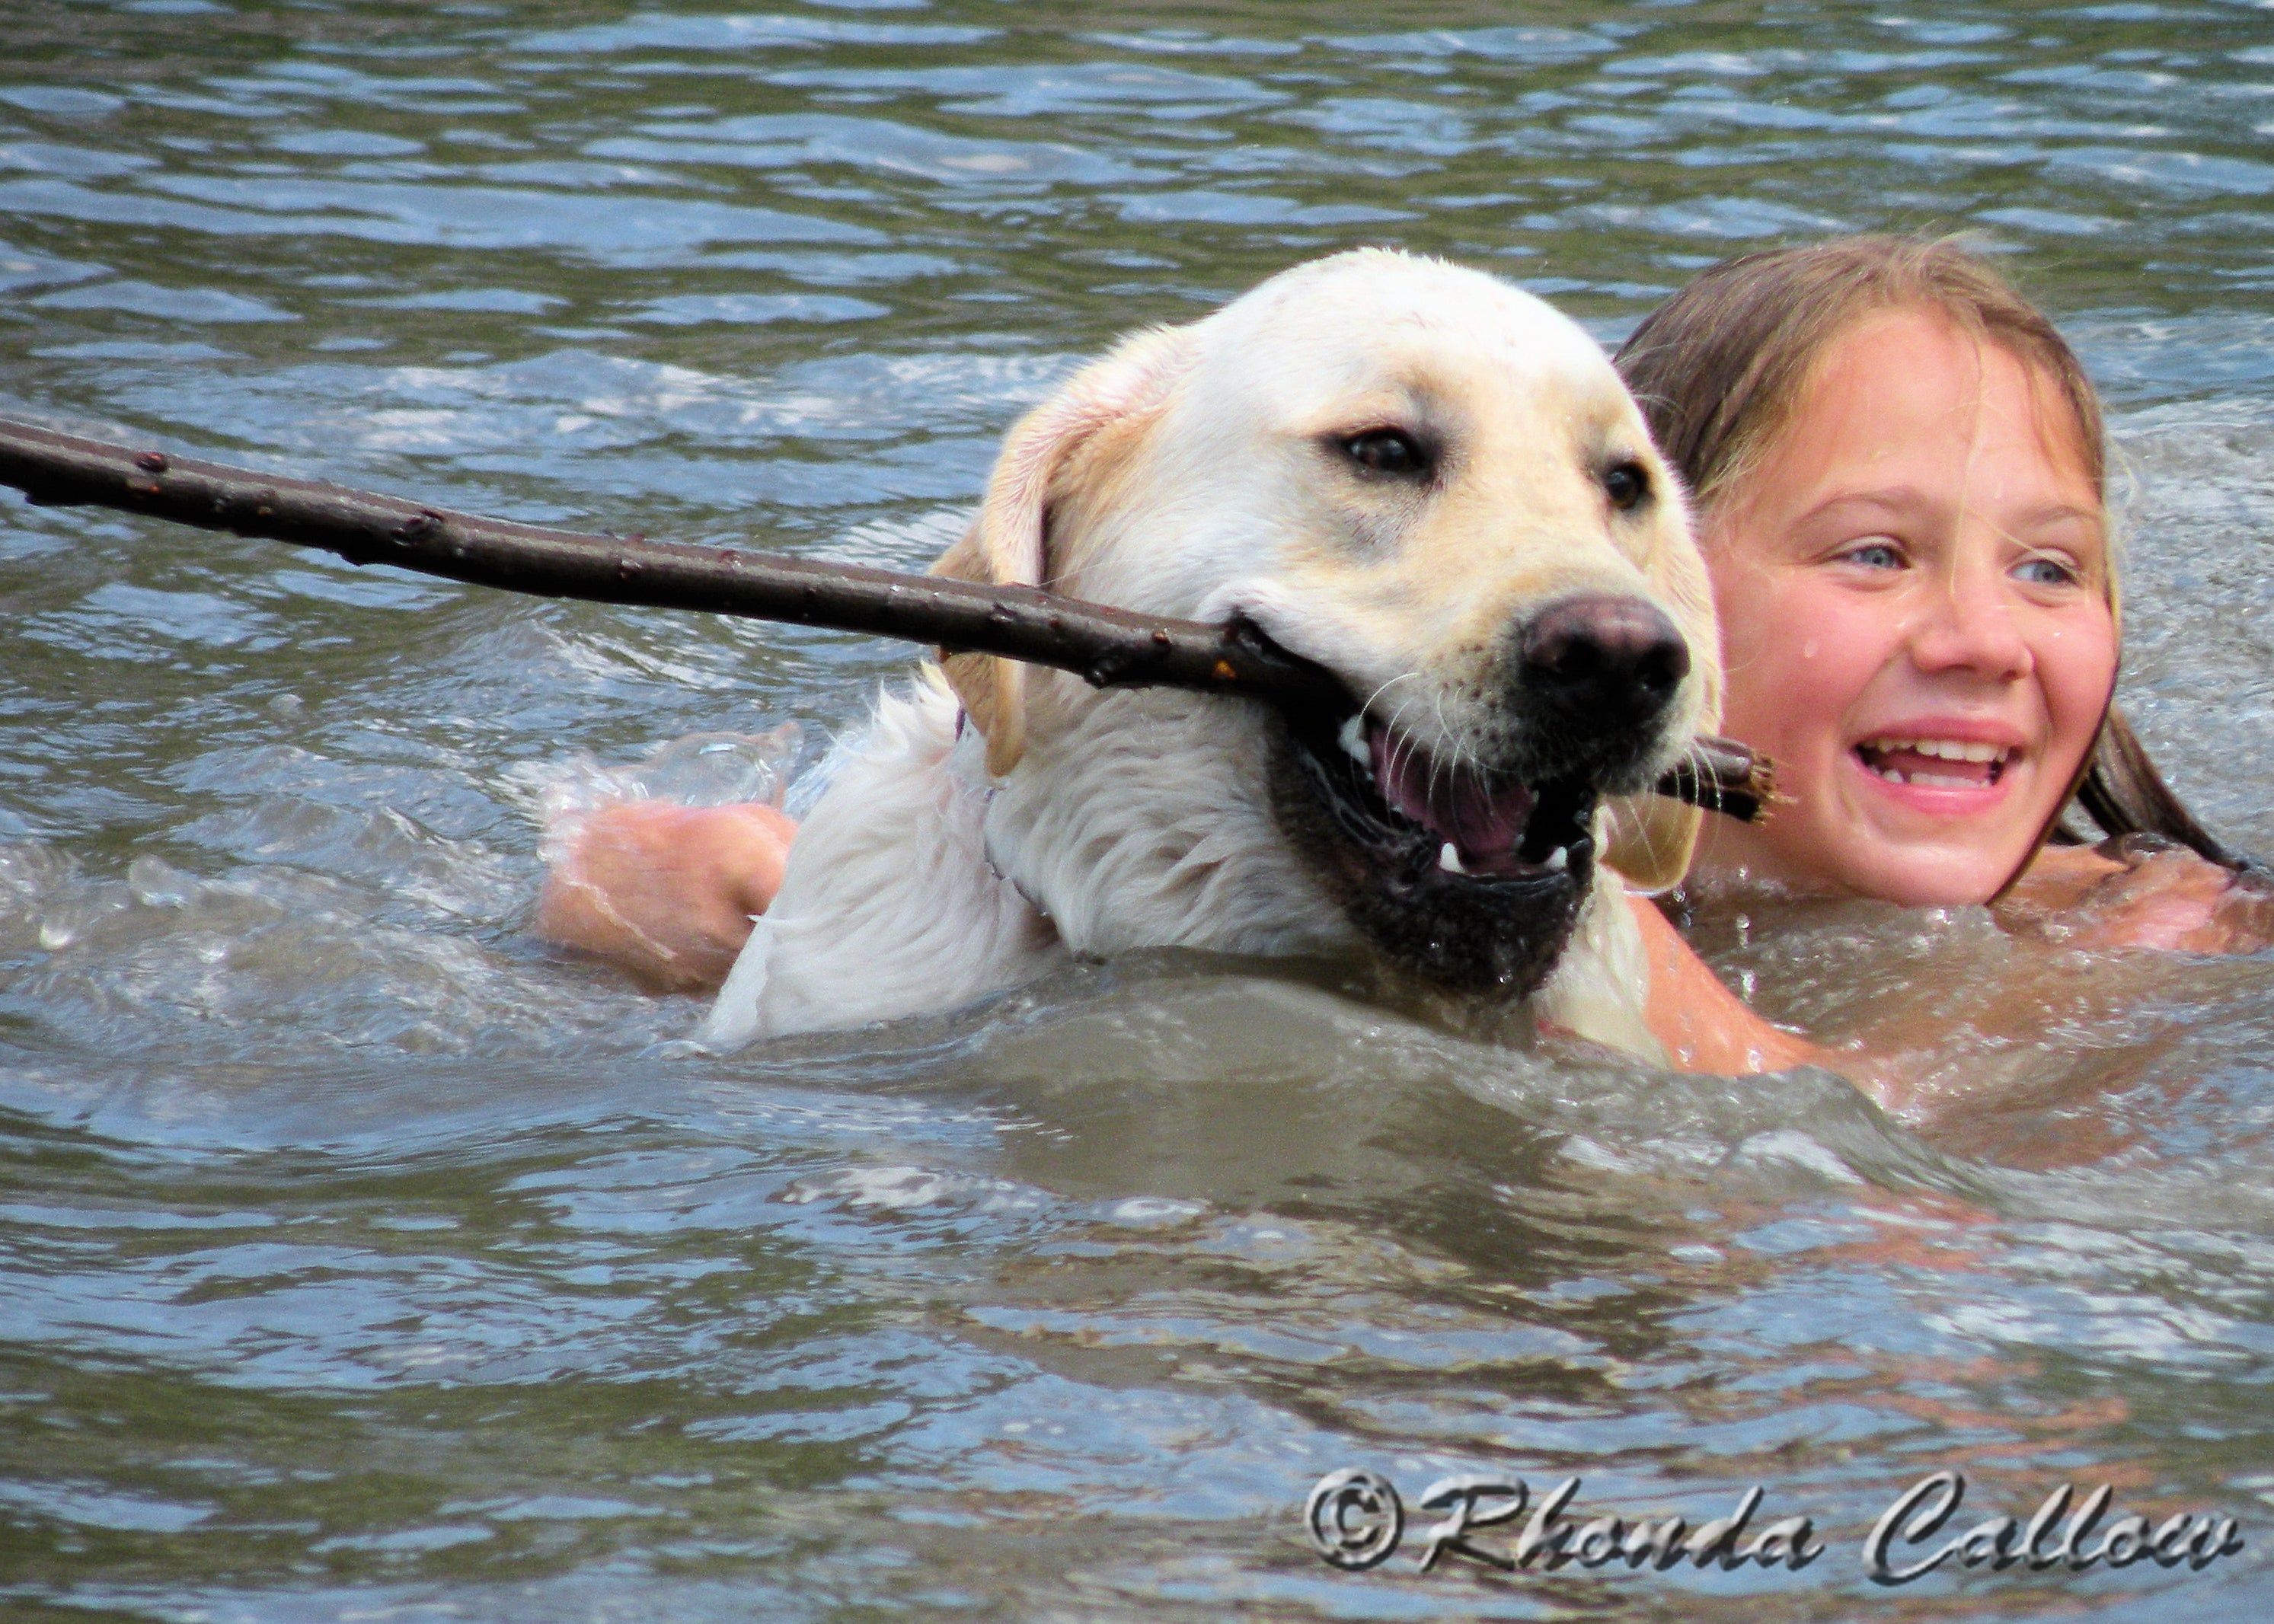 Happy yellow Labrador and girl swimming in a lake in BC, Canada